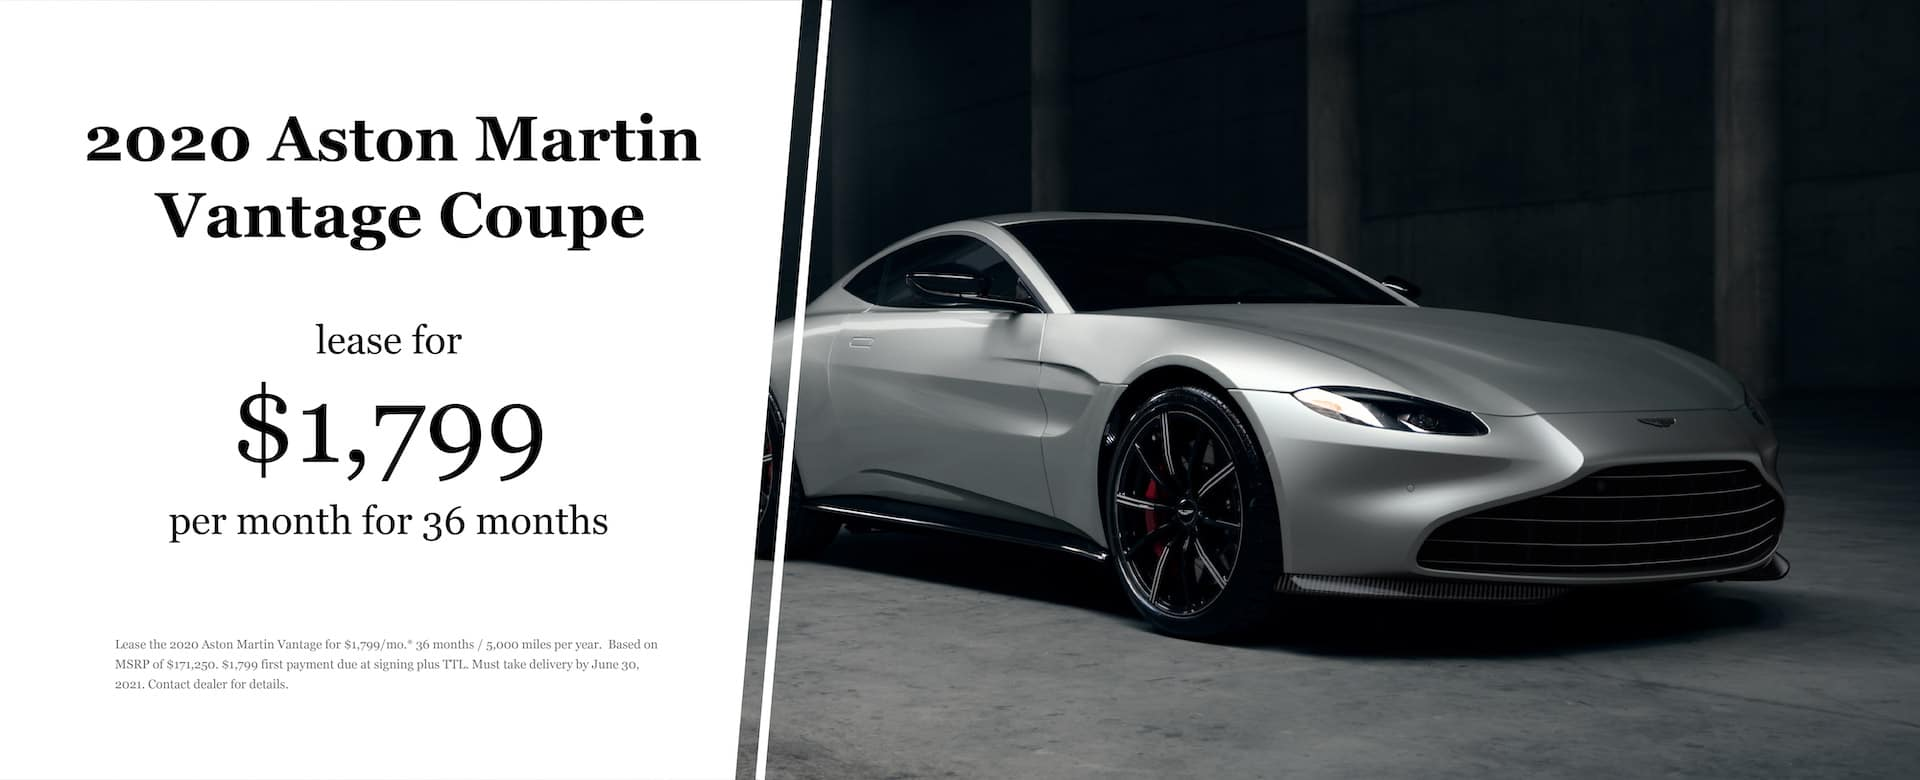 Aston Martin Vantage Lease Offer